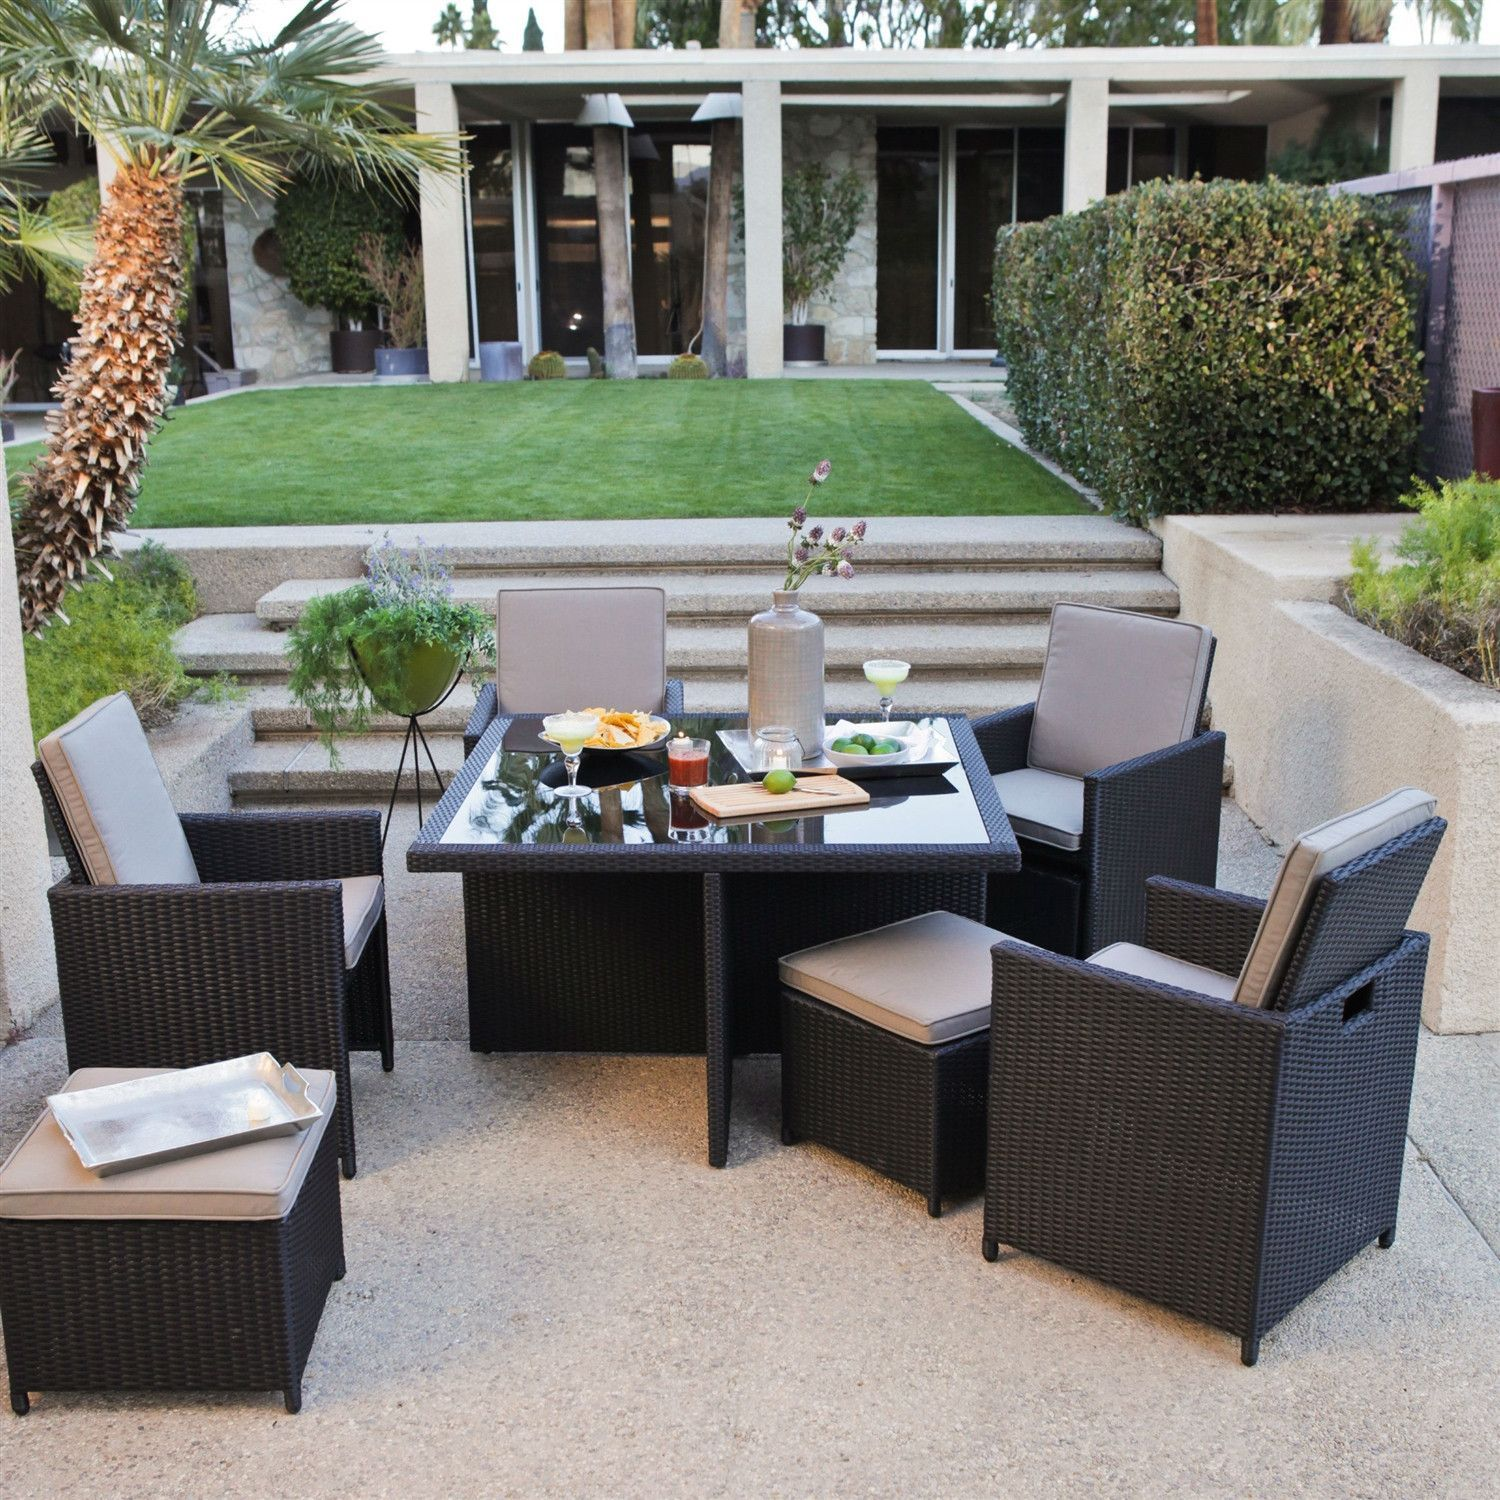 Modern 4 Seat Nesting Outdoor Dining Patio Furniture Set In Brown Wicker  Resin